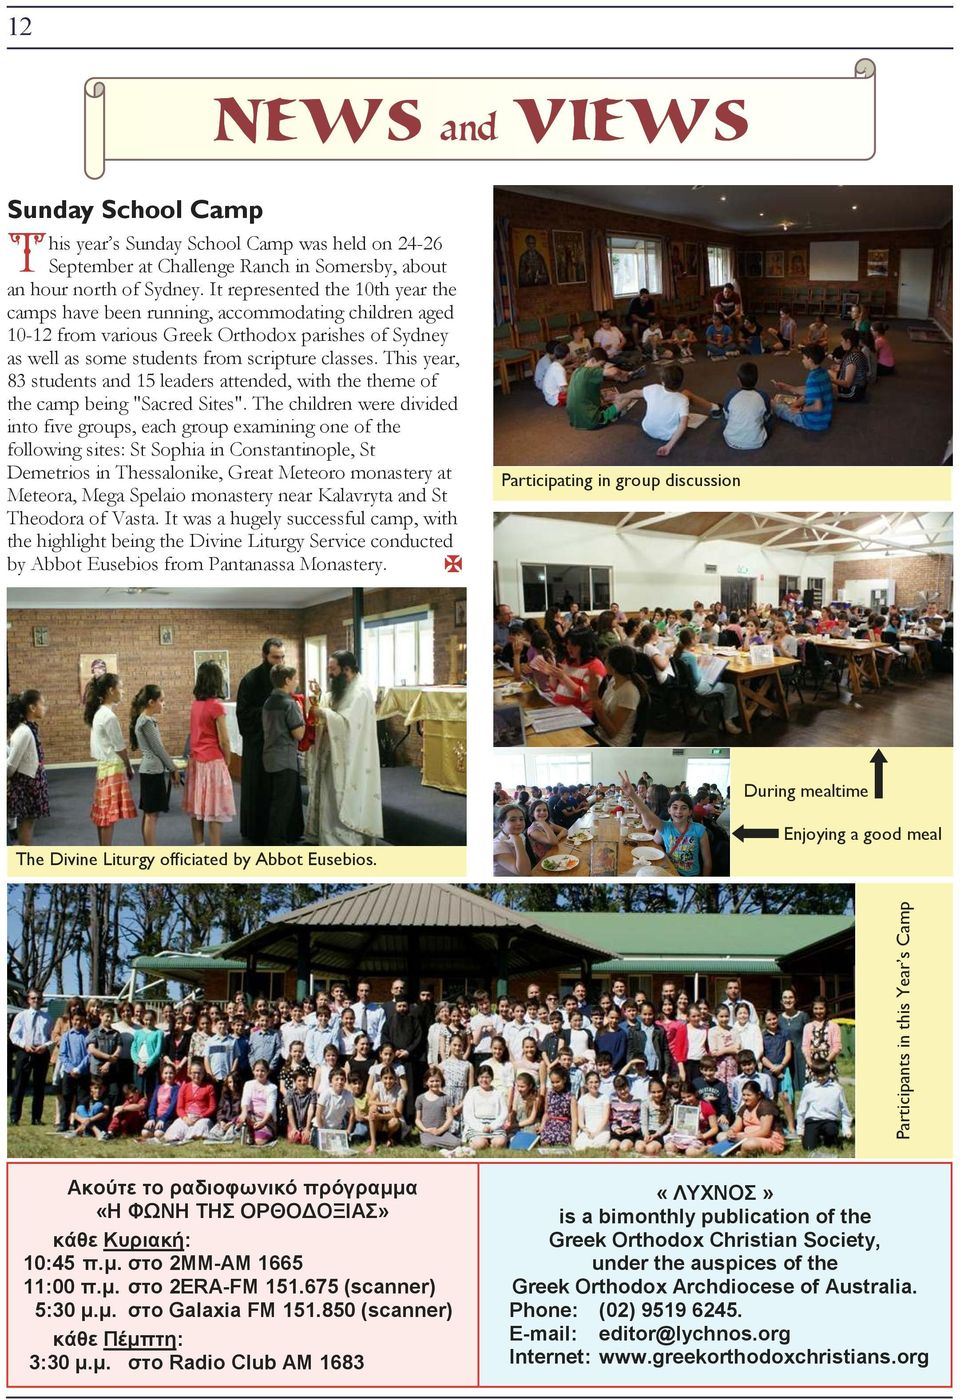 "This year, 83 students and 15 leaders attended, with the theme of the camp being ""Sacred Sites""."